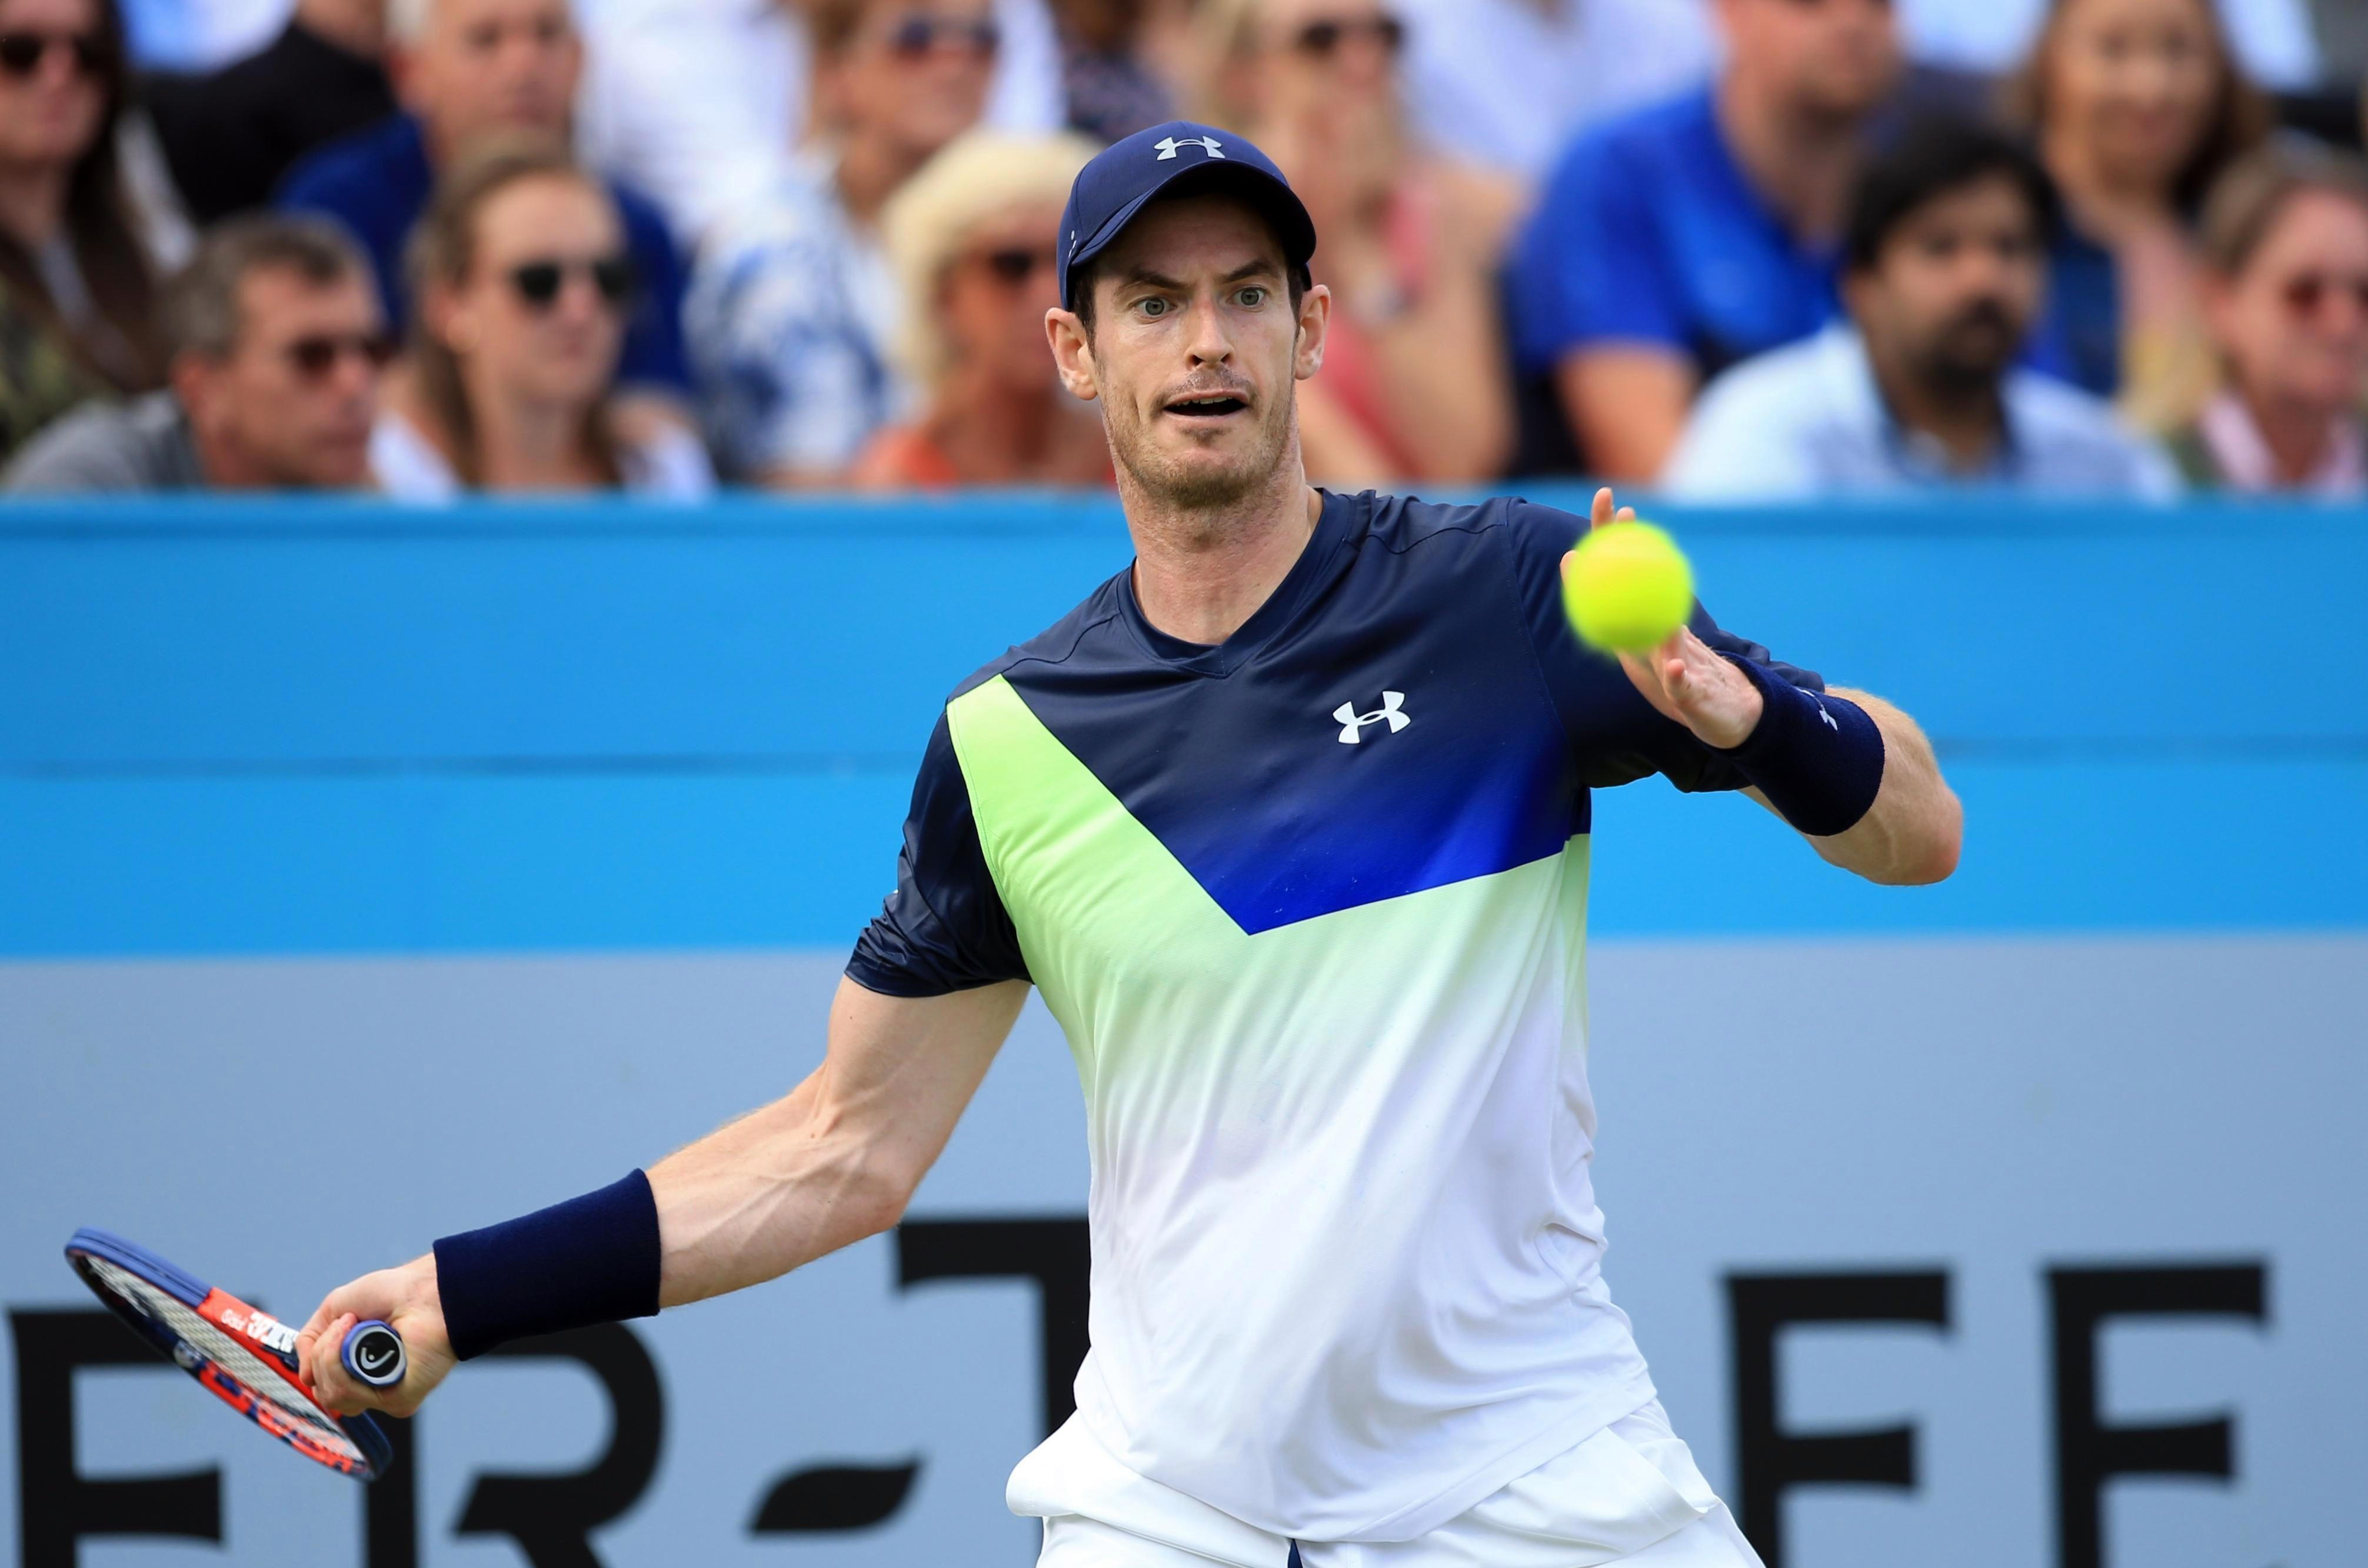 Andy Murray returned to action earlier this week at the Queen's Club Championships, after almost a year out with injury